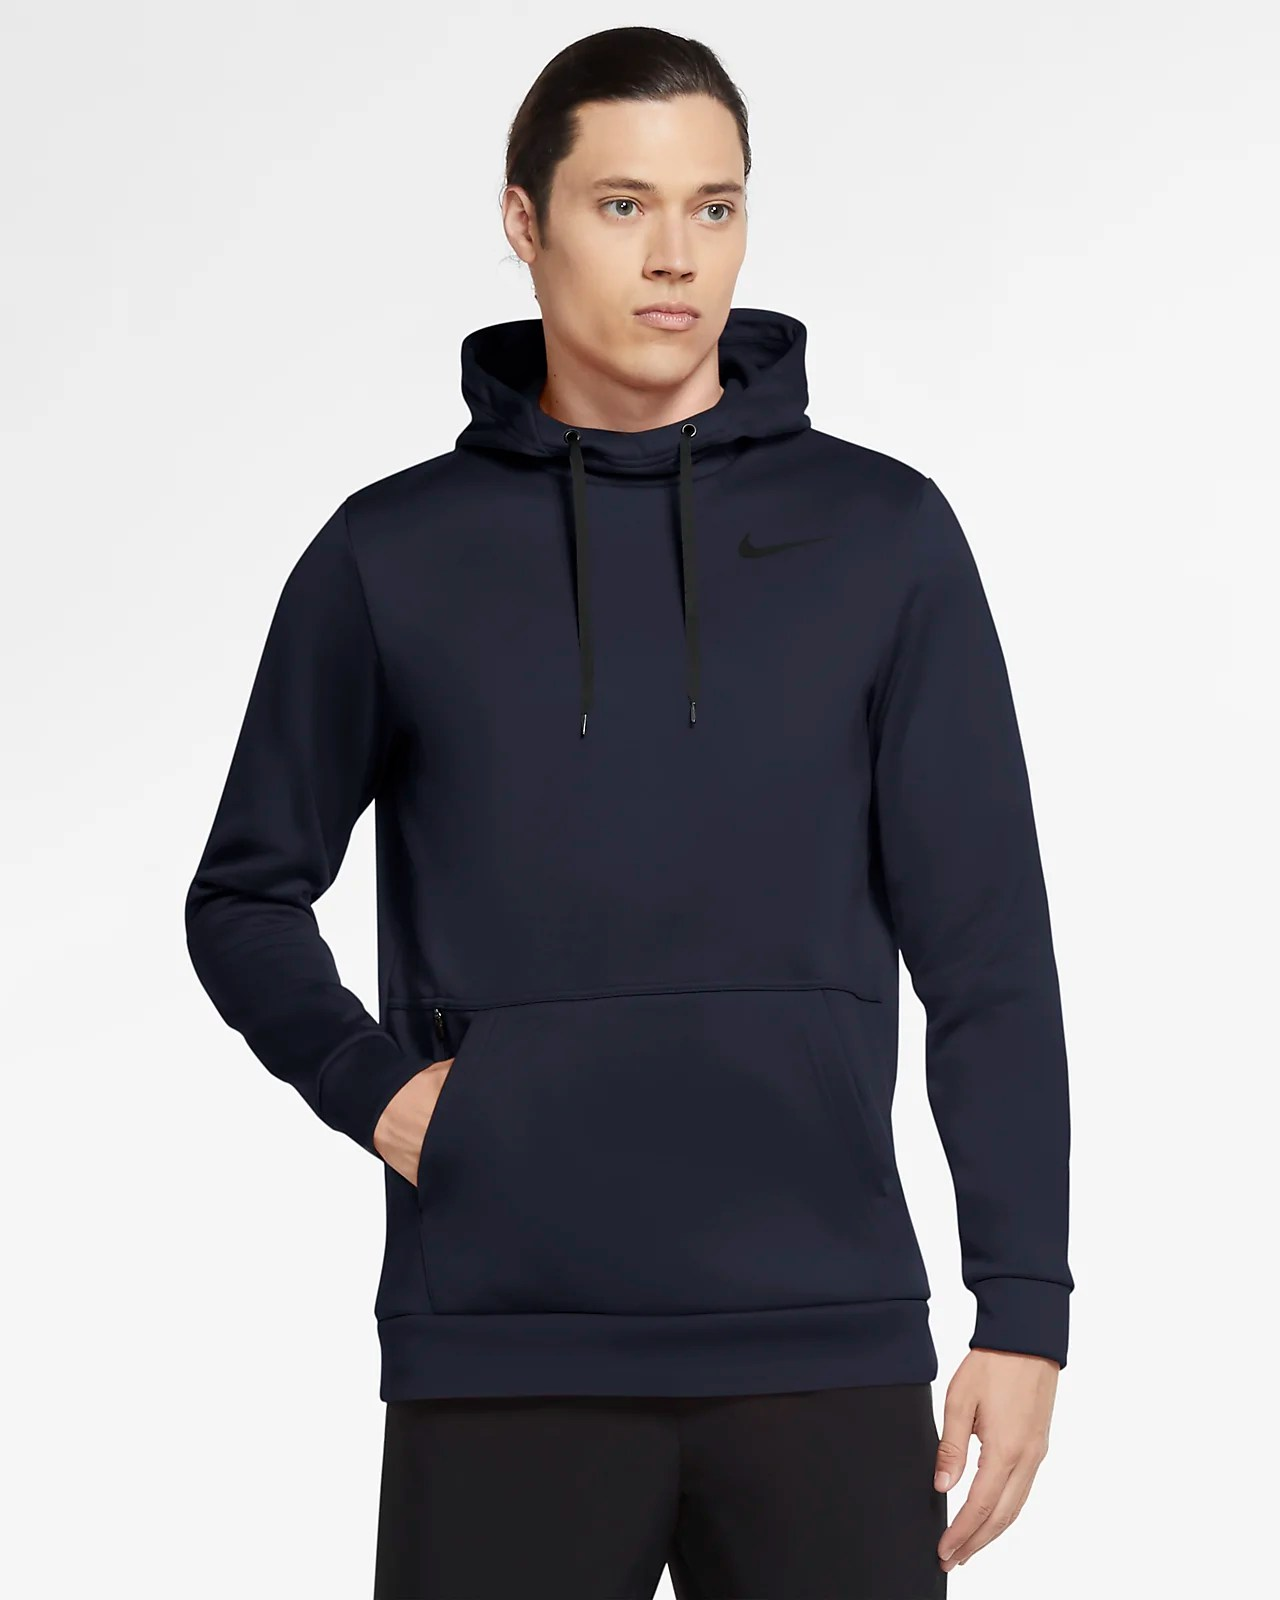 Nike Therma Pullover Hoodie .97 Free Shipping